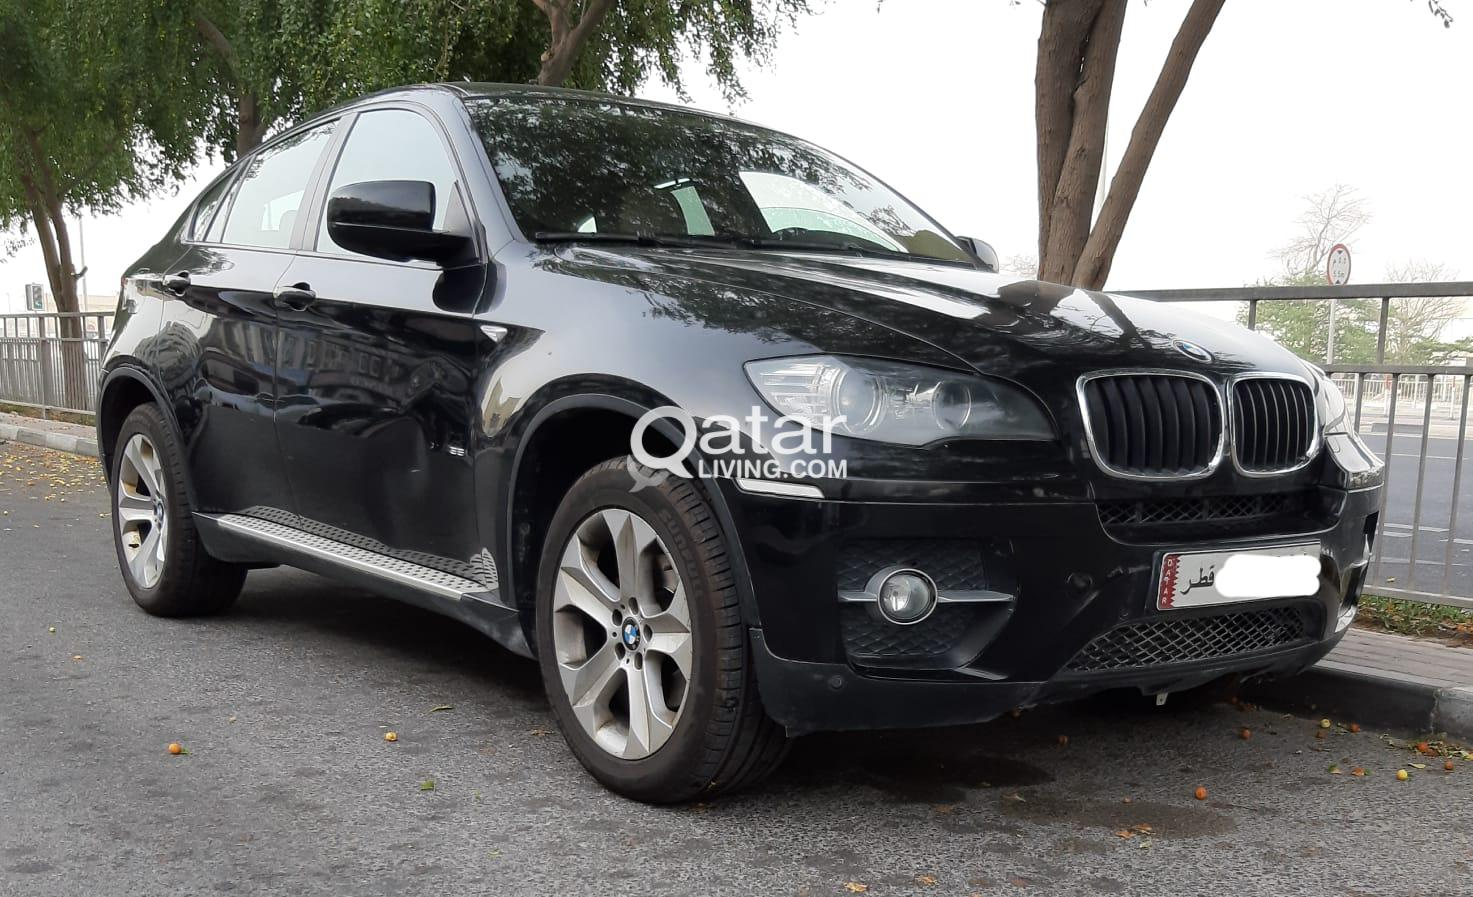 bmw x6 model 2012 perfect condition [ 1473 x 897 Pixel ]